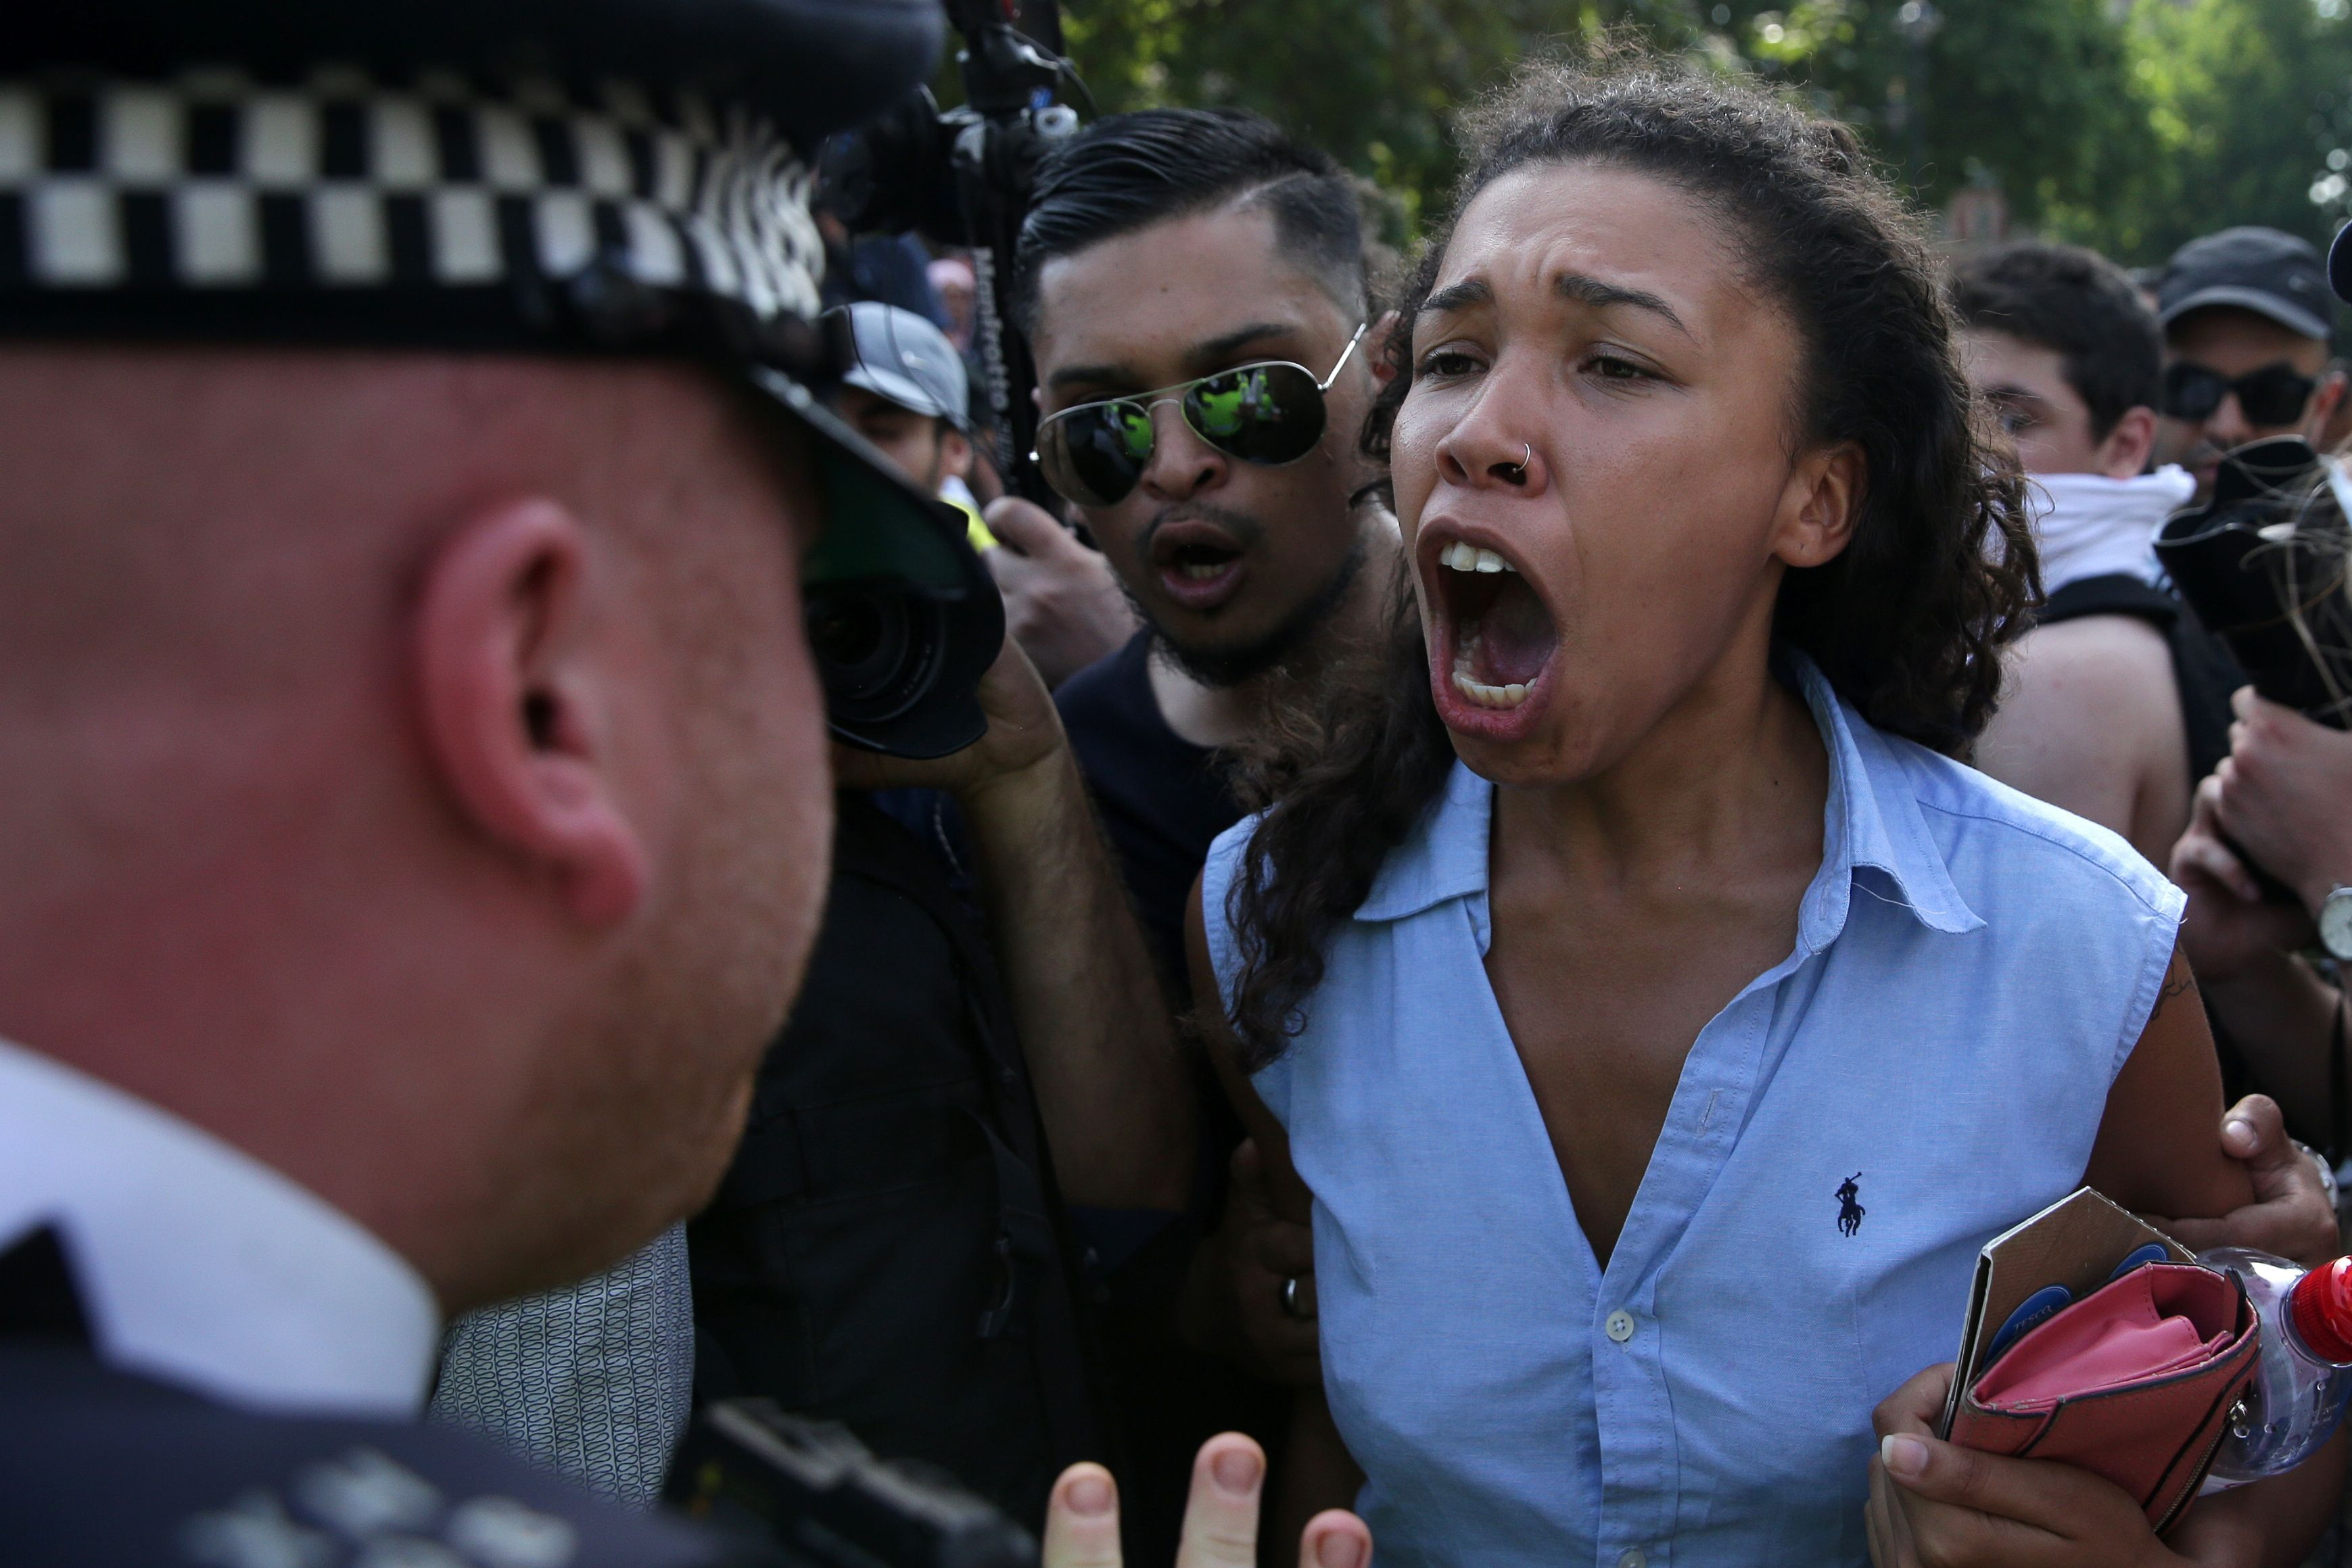 TOPSHOT - A woman clashes with a police officer as protesters gather in central London on June 21, 2017, during an anti-government protest to coincide with the State Opening of Parliament and following the deadly fire at Grenfell Tower. Anti-government protesters highlighting issues including the Grenfell Tower fire marched on parliament from west London after Queen Elizabeth II formally opened parliament and announced the British government's legislative programme two days later than planned. / AFP PHOTO / Daniel LEAL-OLIVAS / TT / kod 444